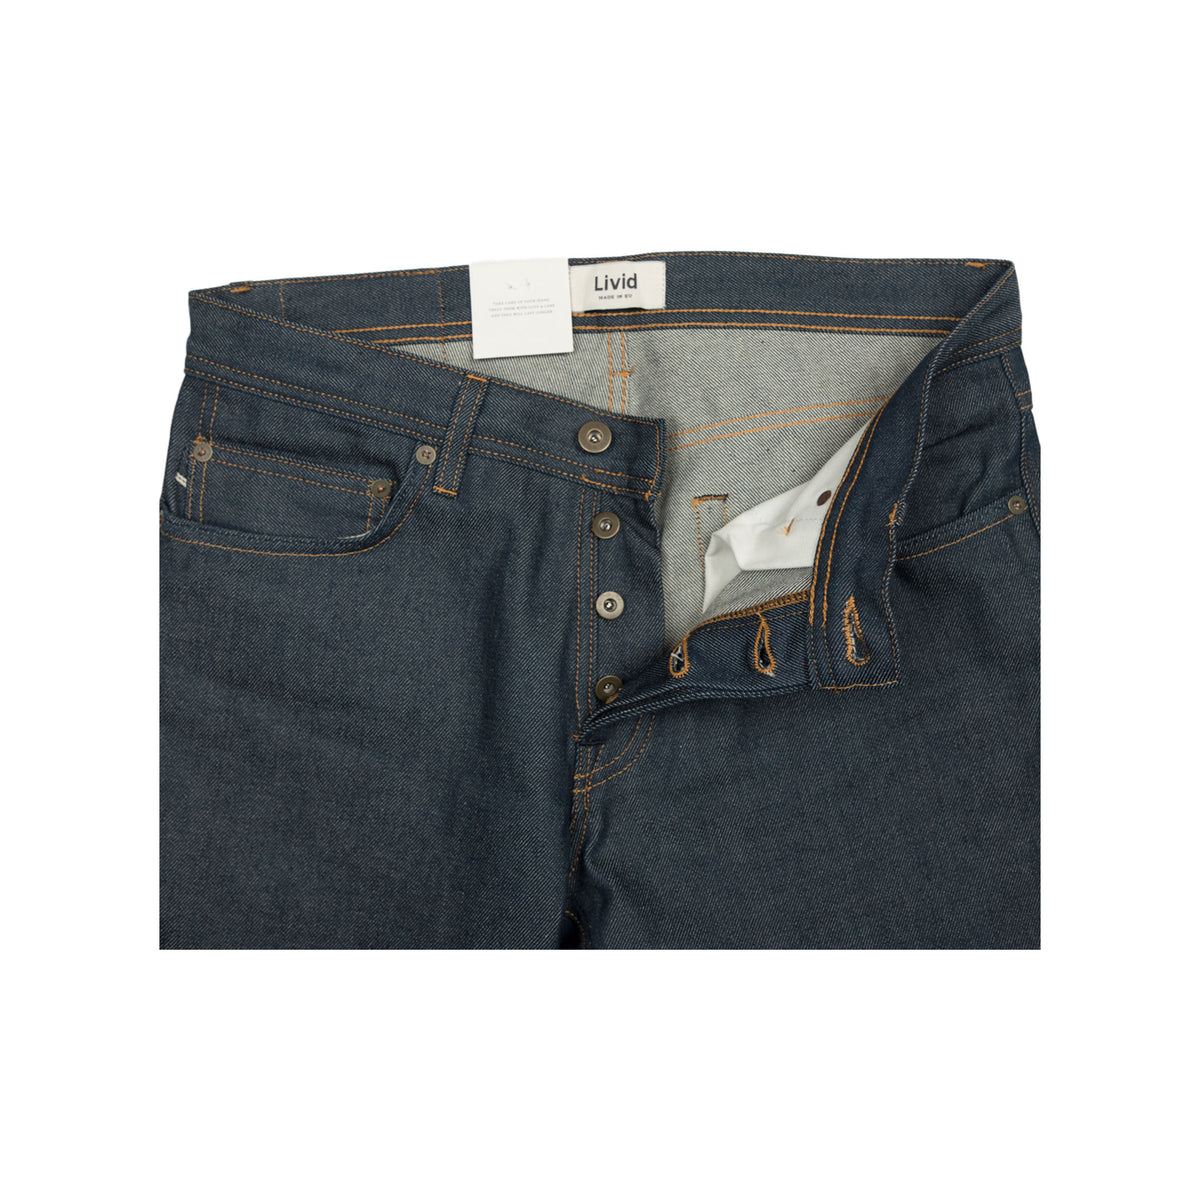 Livid Slim Japan Blue Selvage